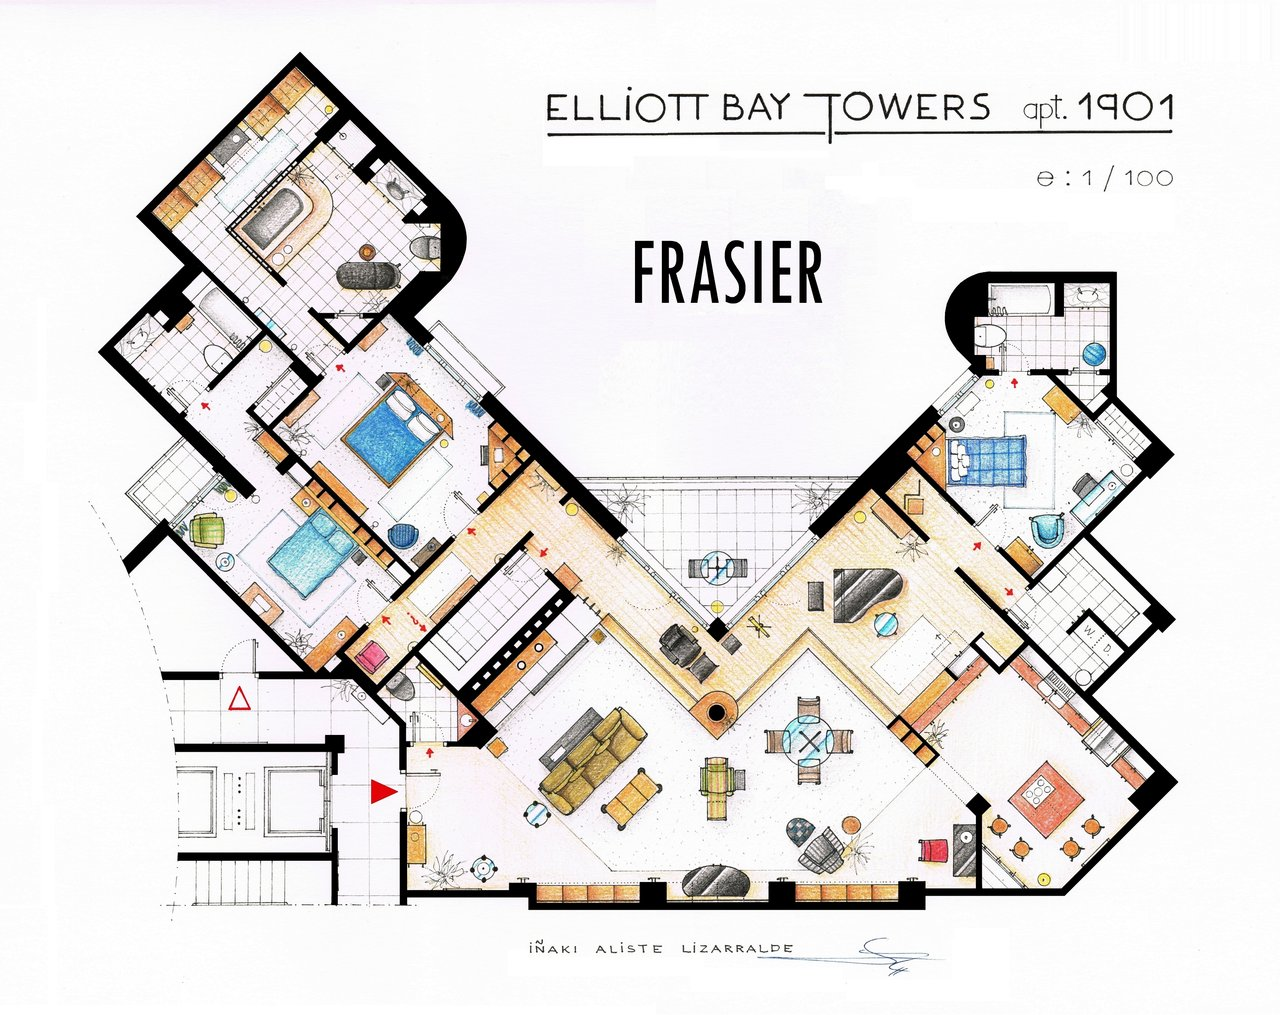 frasier_s_apartment_floorplan